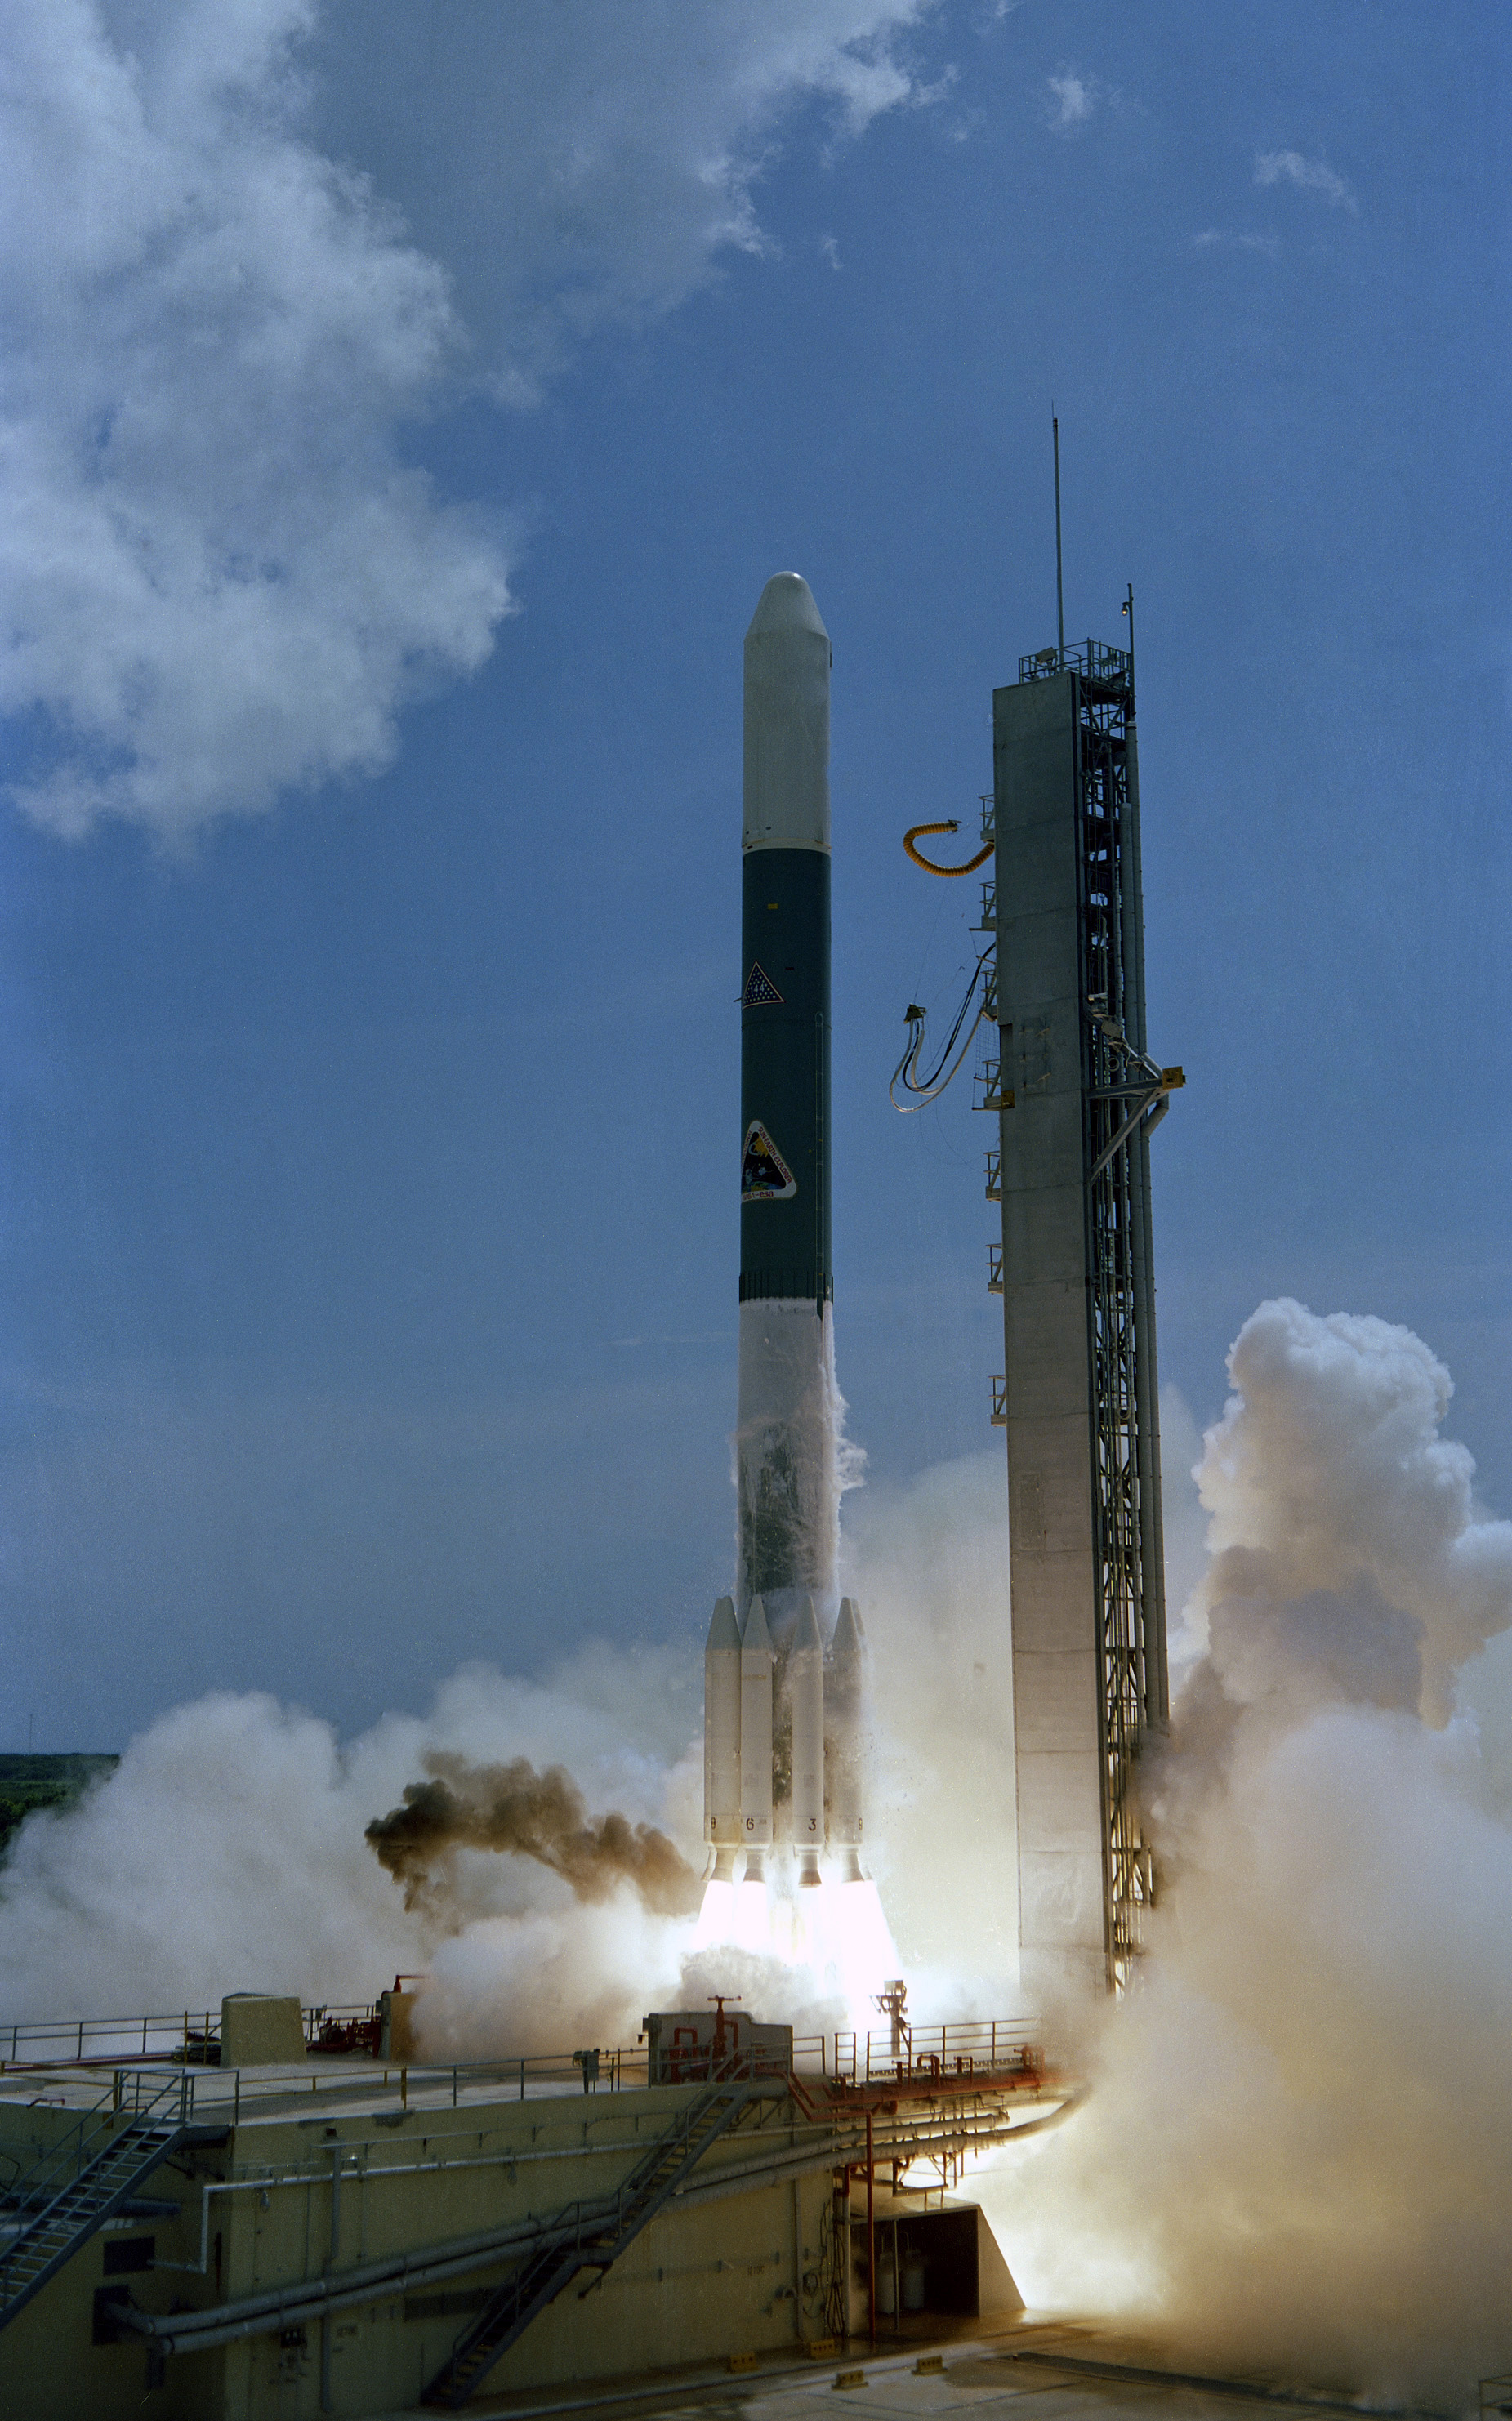 A Delta 144 launch vehicle carrying the NASA/European Space Agency International Sun-Earth Explorer (ISEE) 3 satellite lifts off from the launch pad